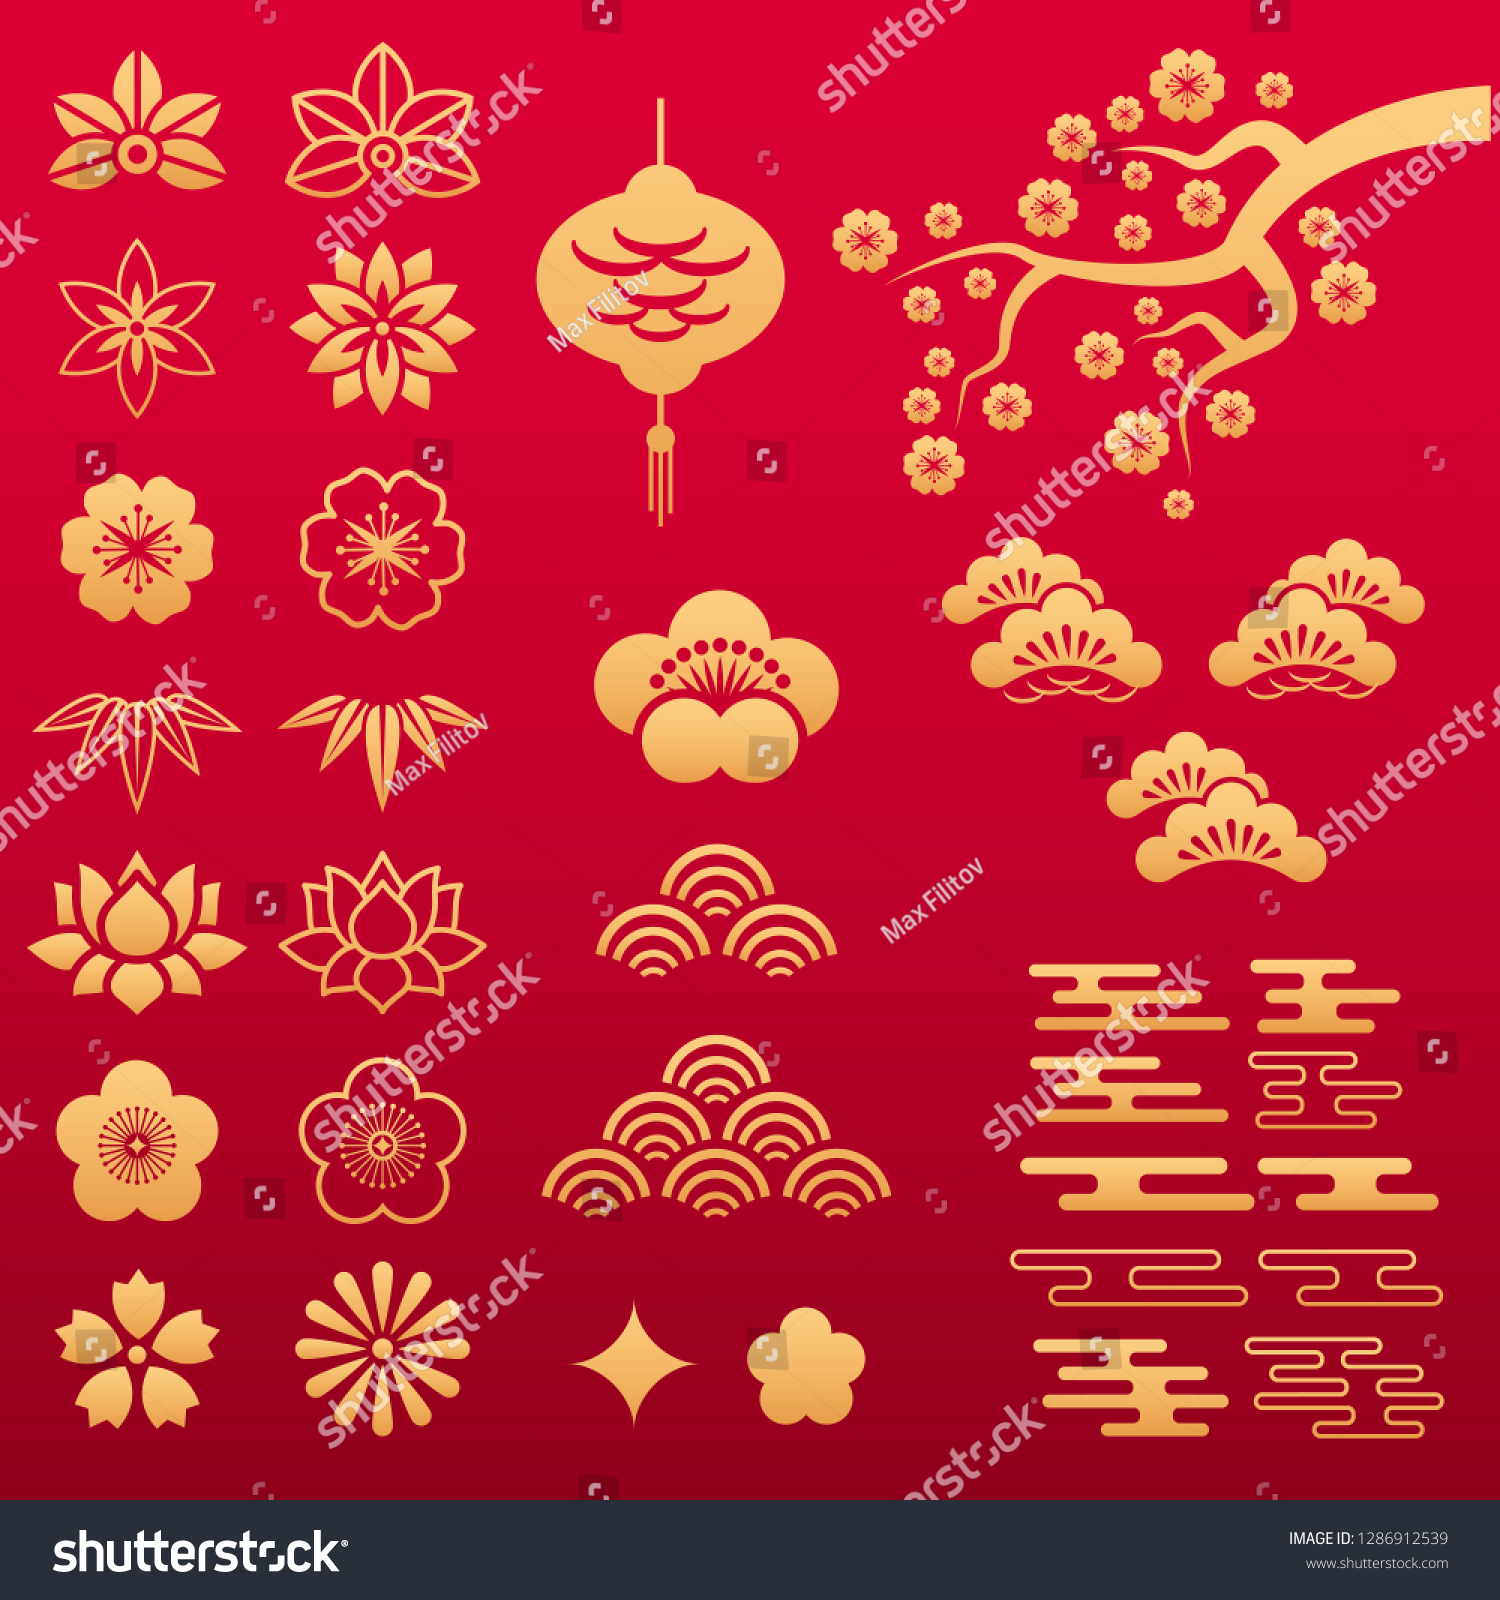 Vector Set Chinese Gold Floral Patterns Royalty Free Stock Image